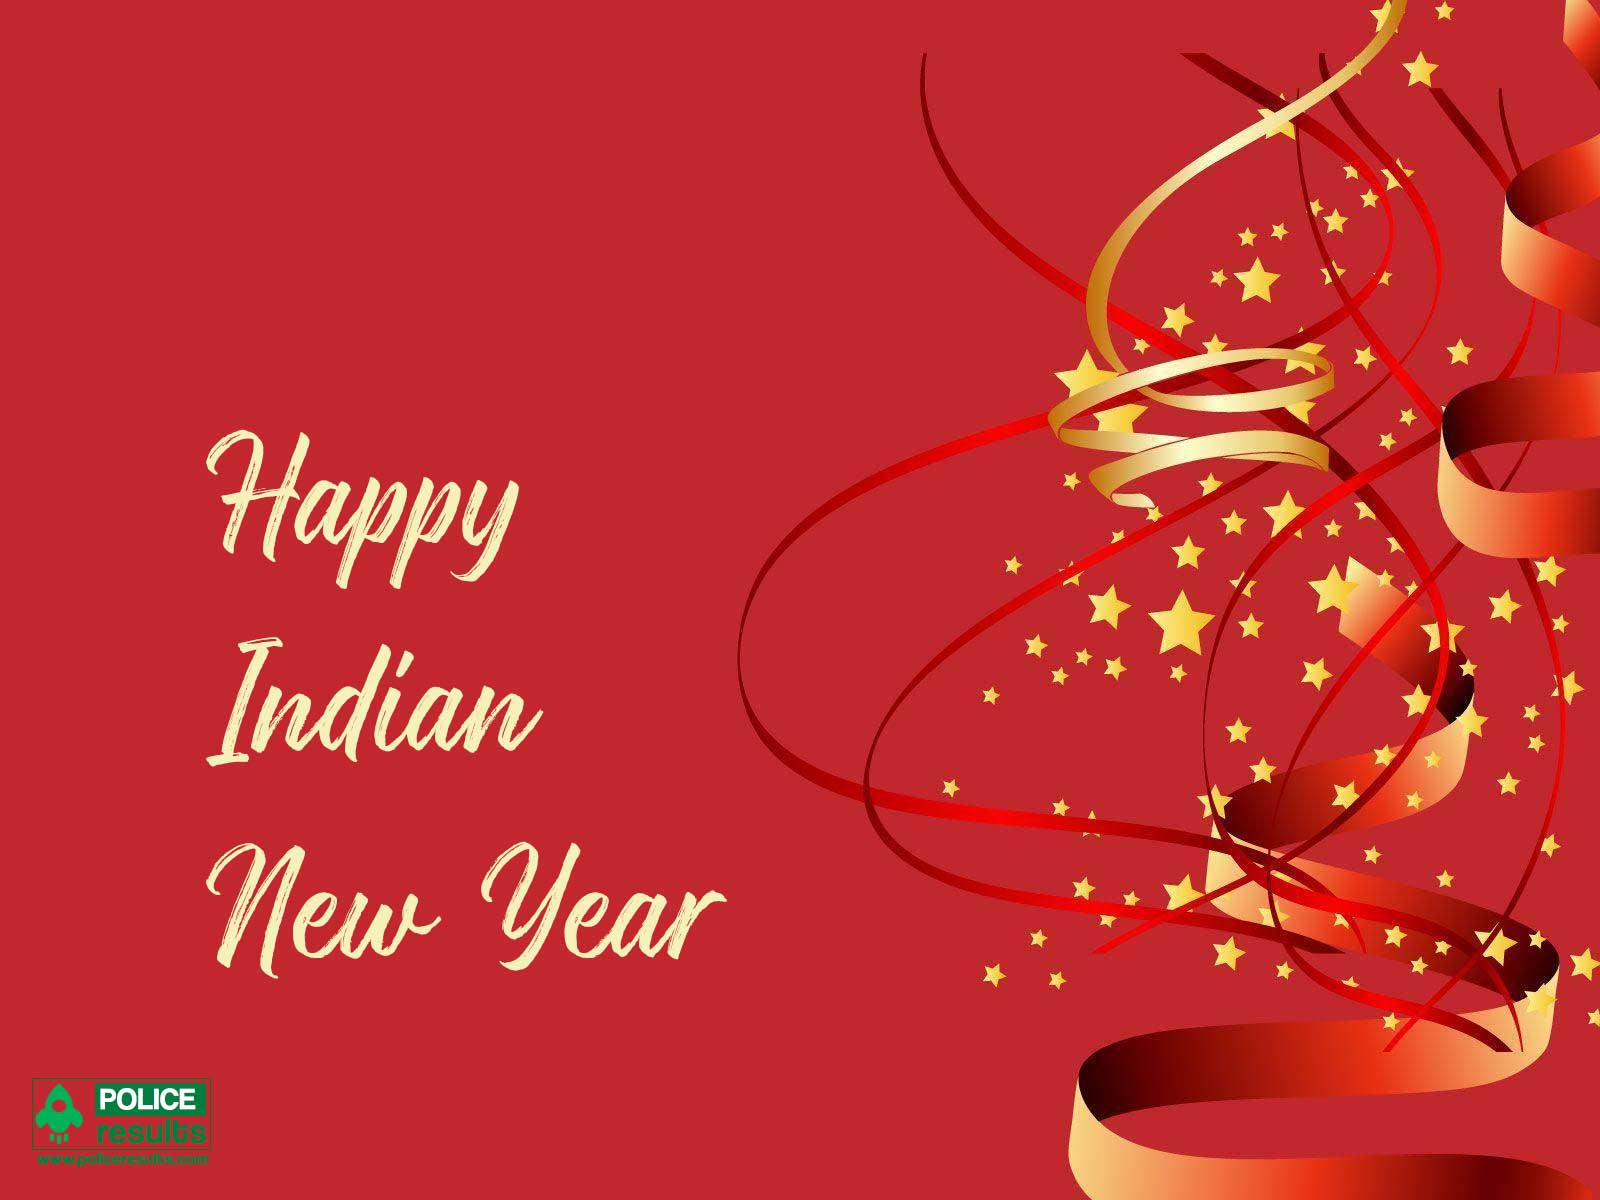 indian new year s days happy hindu new year 2020 festivals celebrations in different parts of india police results happy hindu new year 2020 festivals